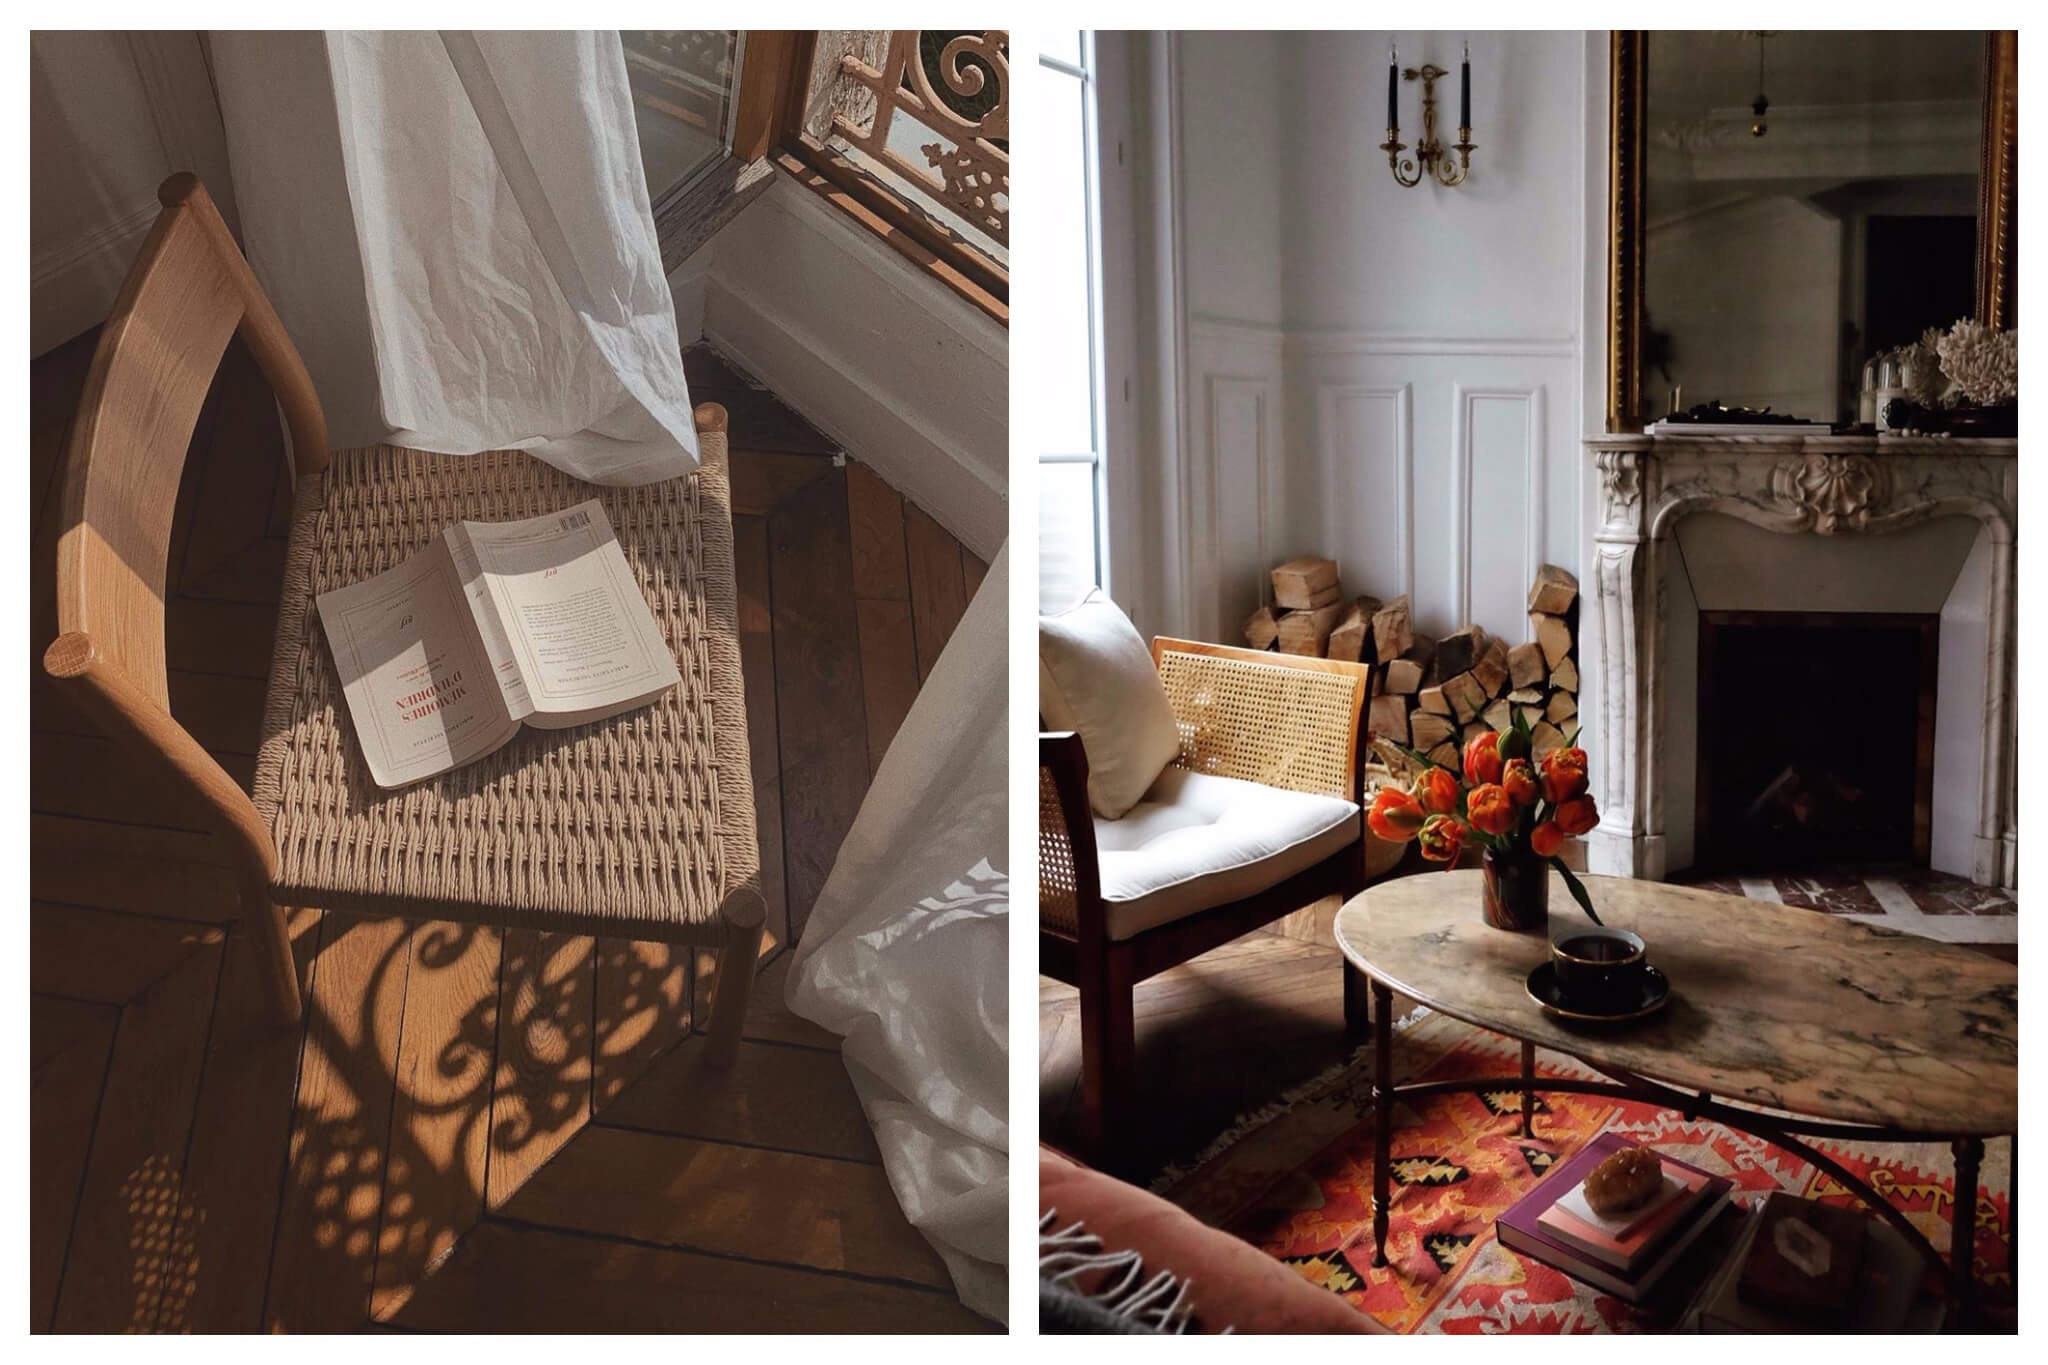 Left, a chair with a book on it in the sunshine as we all stay in during the Coronavirus. Right, Parisian interiors with a gorgeous fireplace.